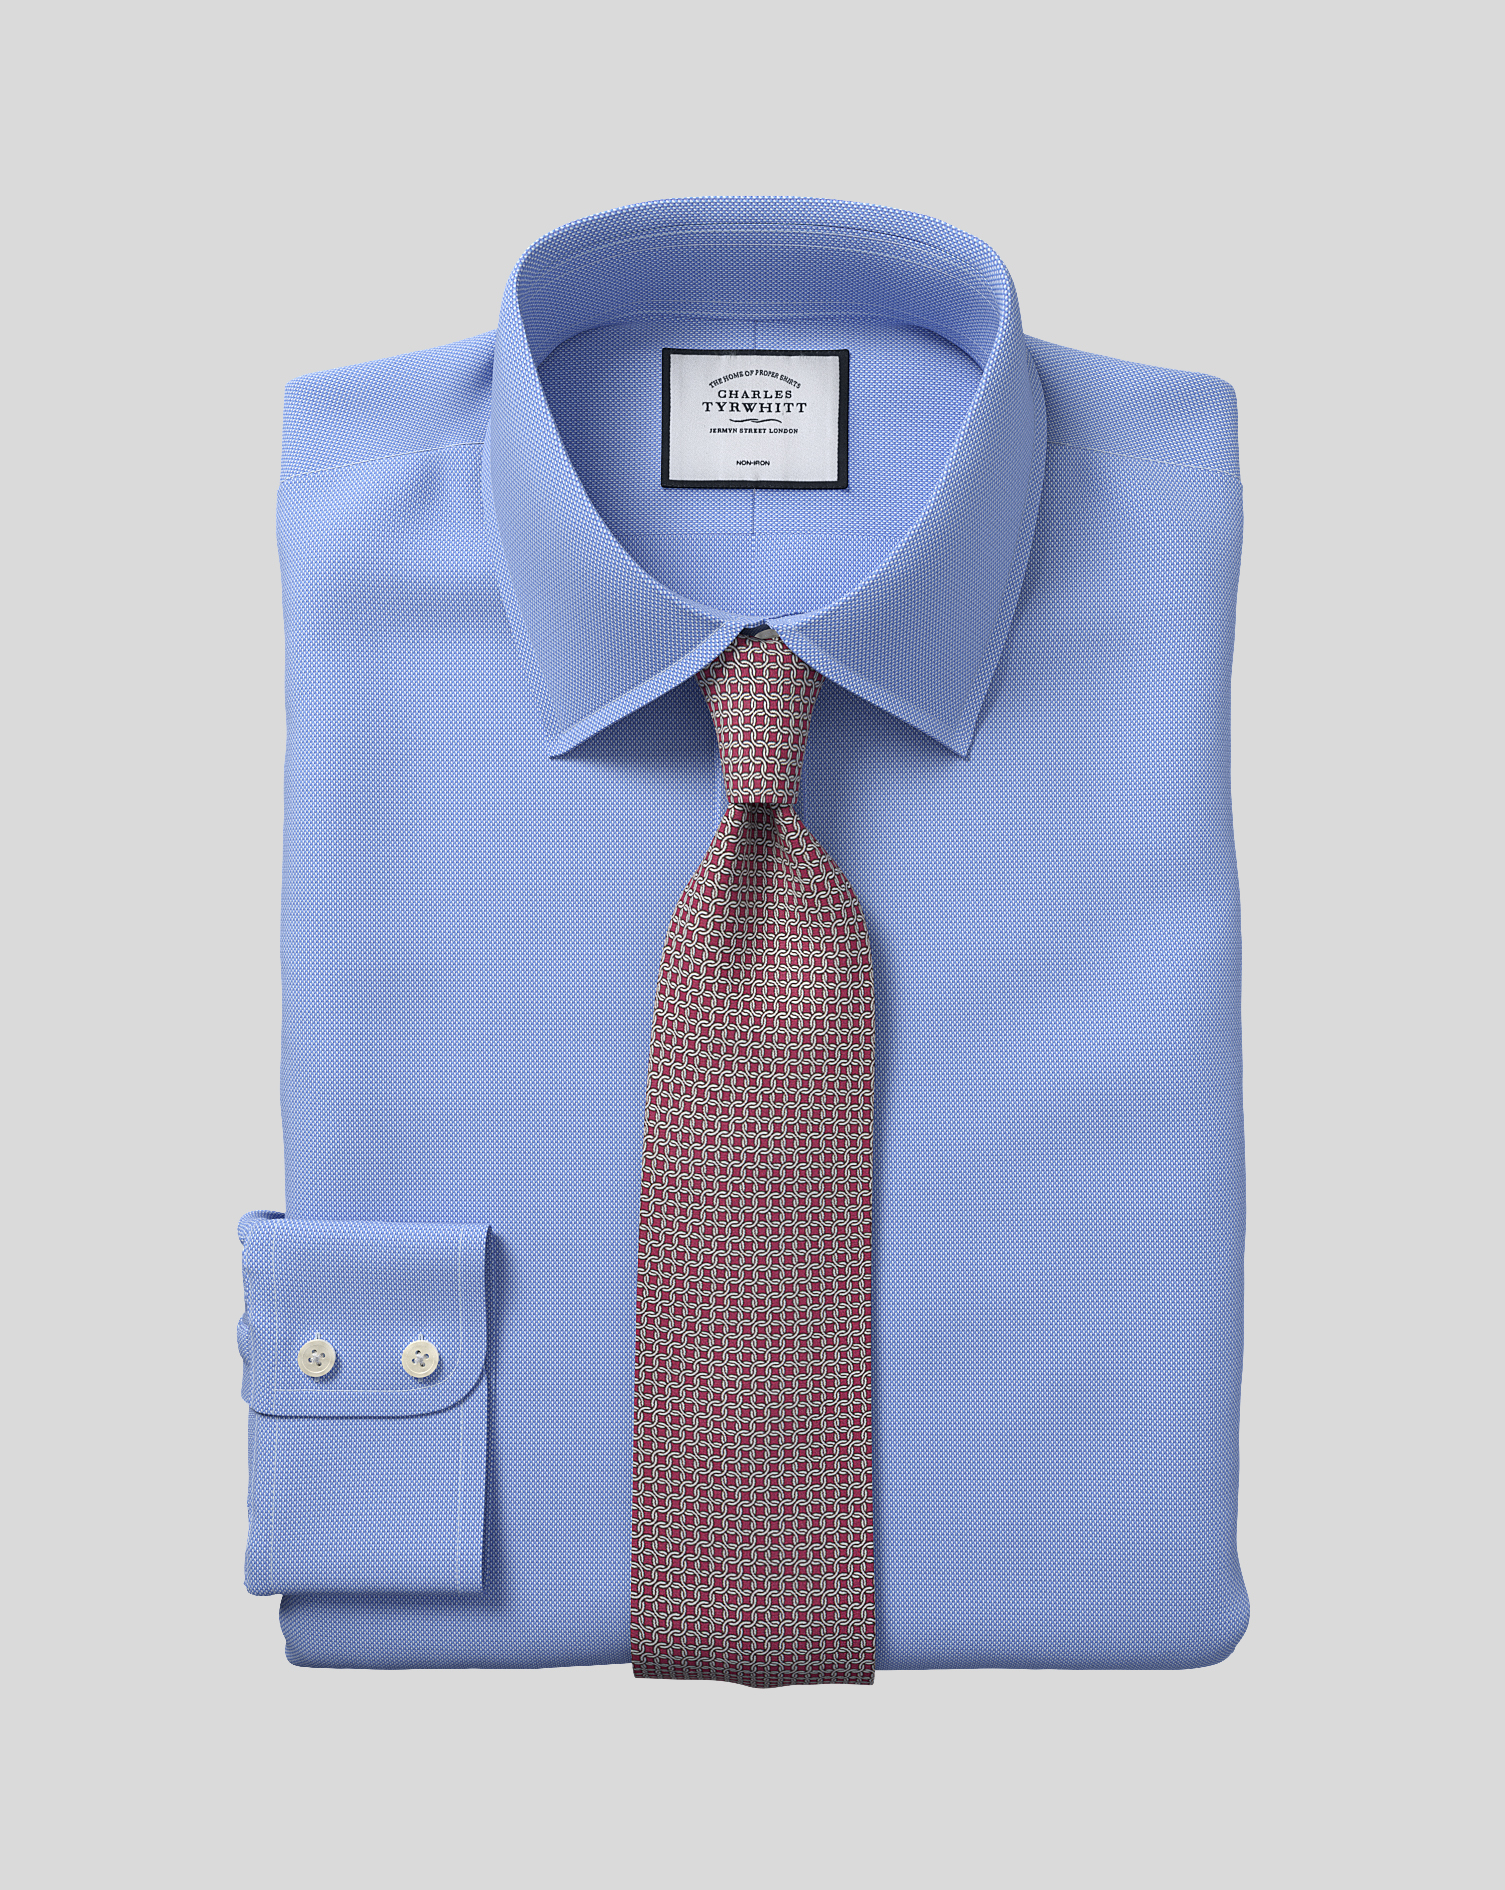 Slim Fit Non-Iron Blue Royal Panama Cotton Formal Shirt Double Cuff Size 16.5/33 by Charles Tyrwhitt